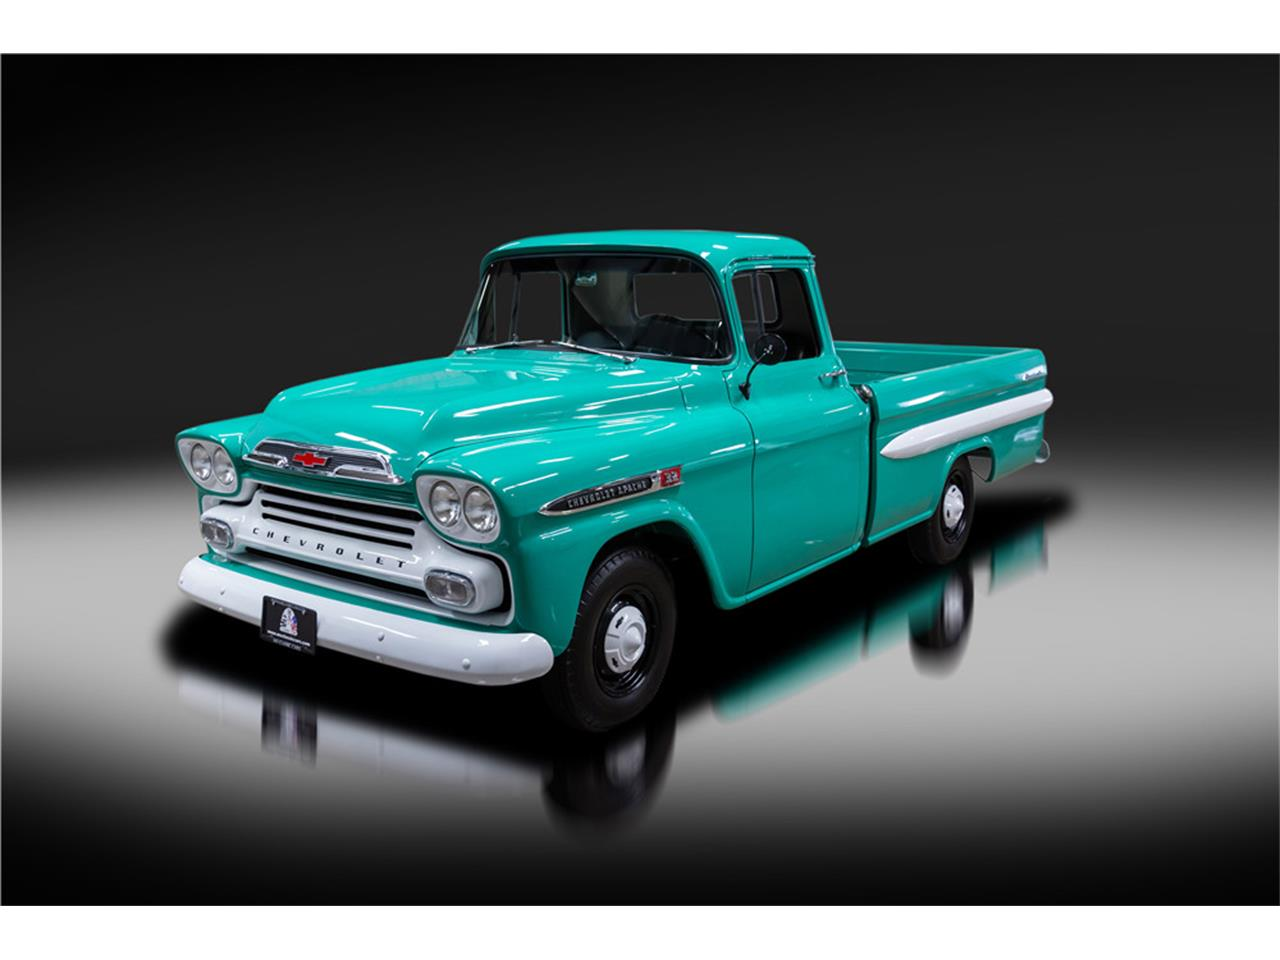 1959 Chevrolet 3200 for sale in West Palm Beach, FL